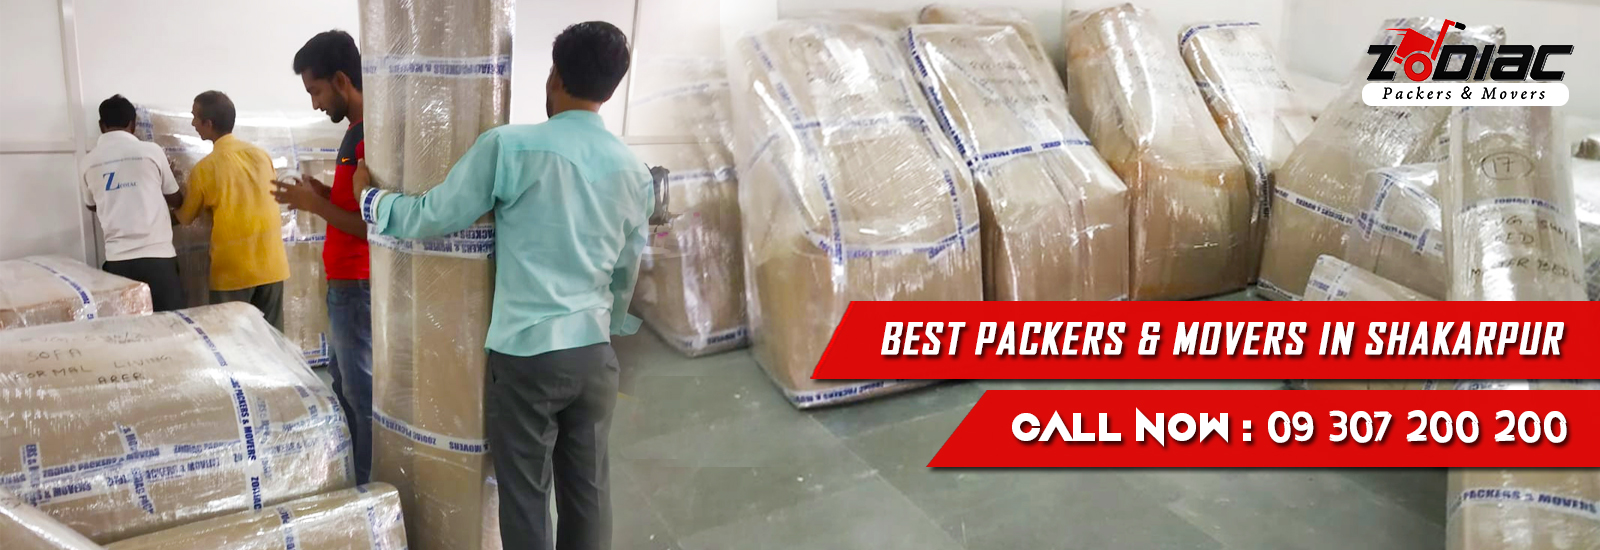 Packers and Movers in Shakarpur